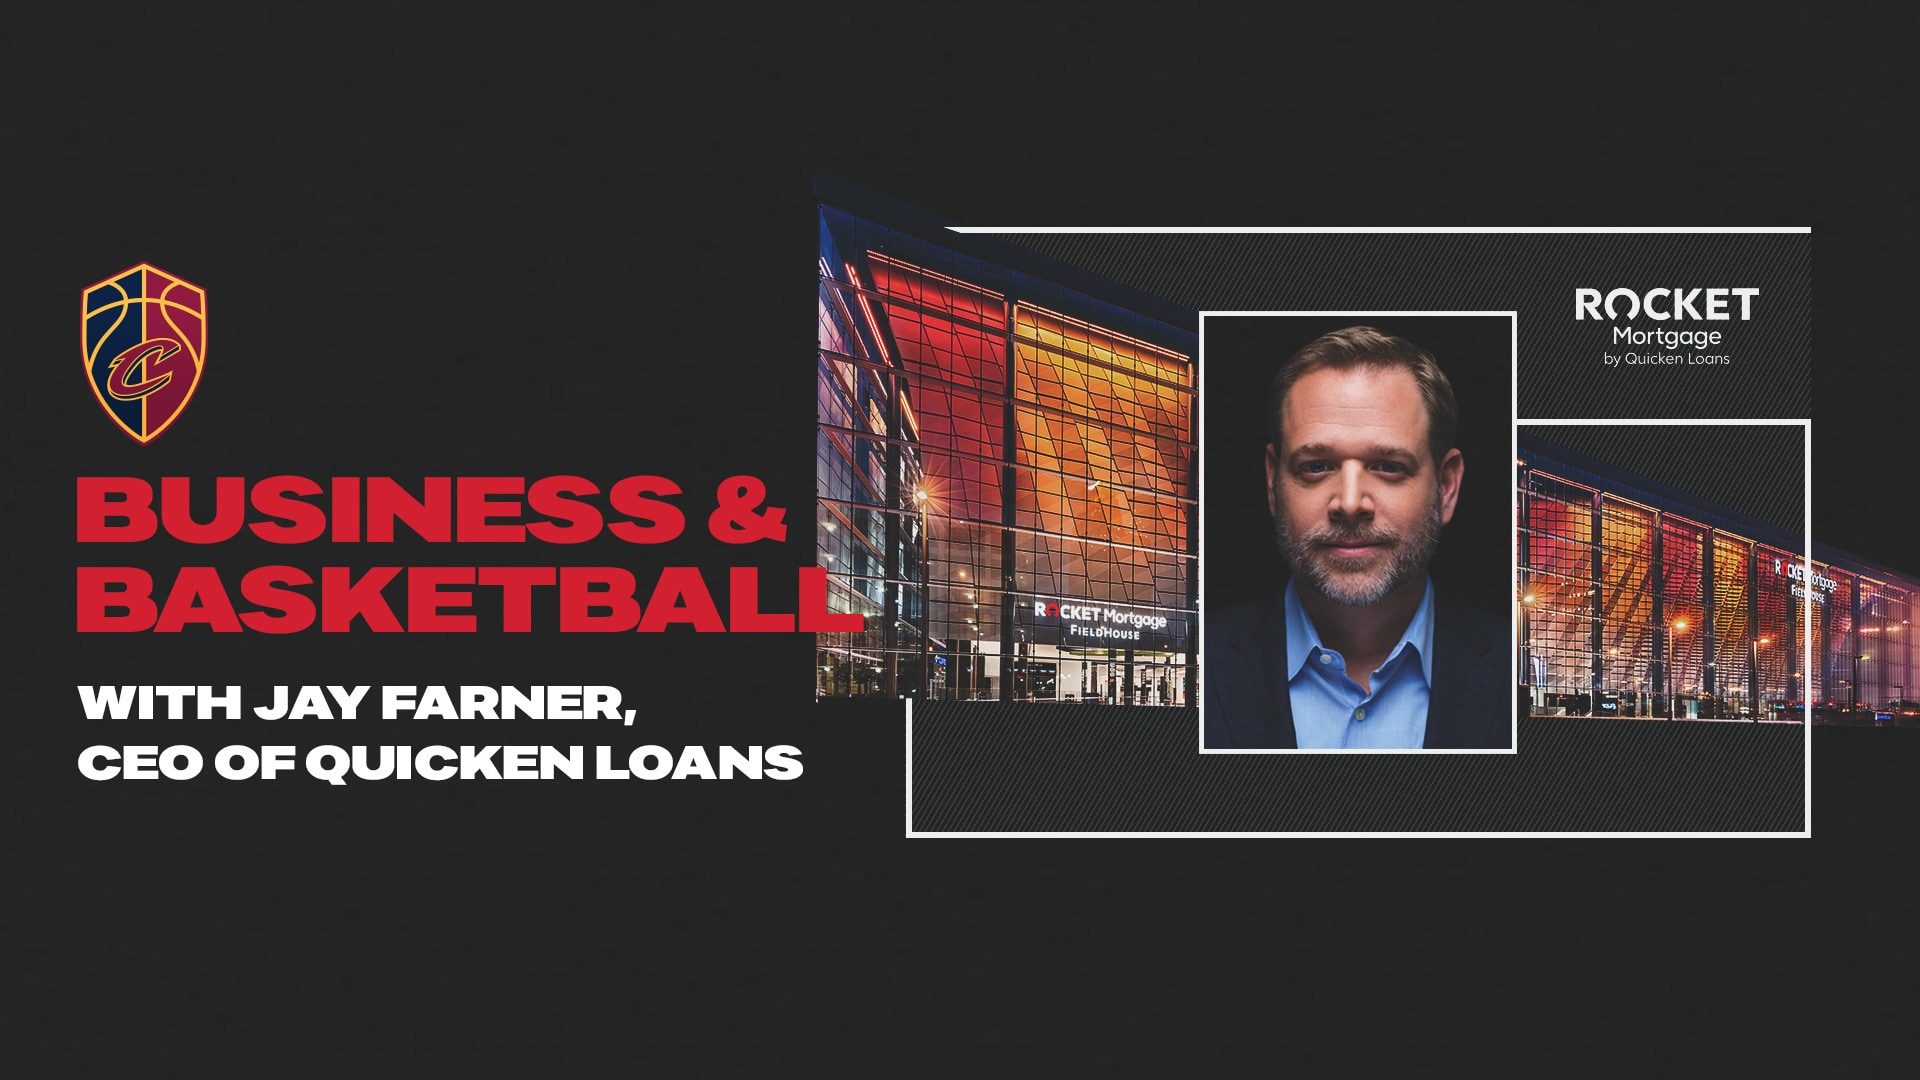 Conference Call with Jay Farner, CEO of Quicken Loans